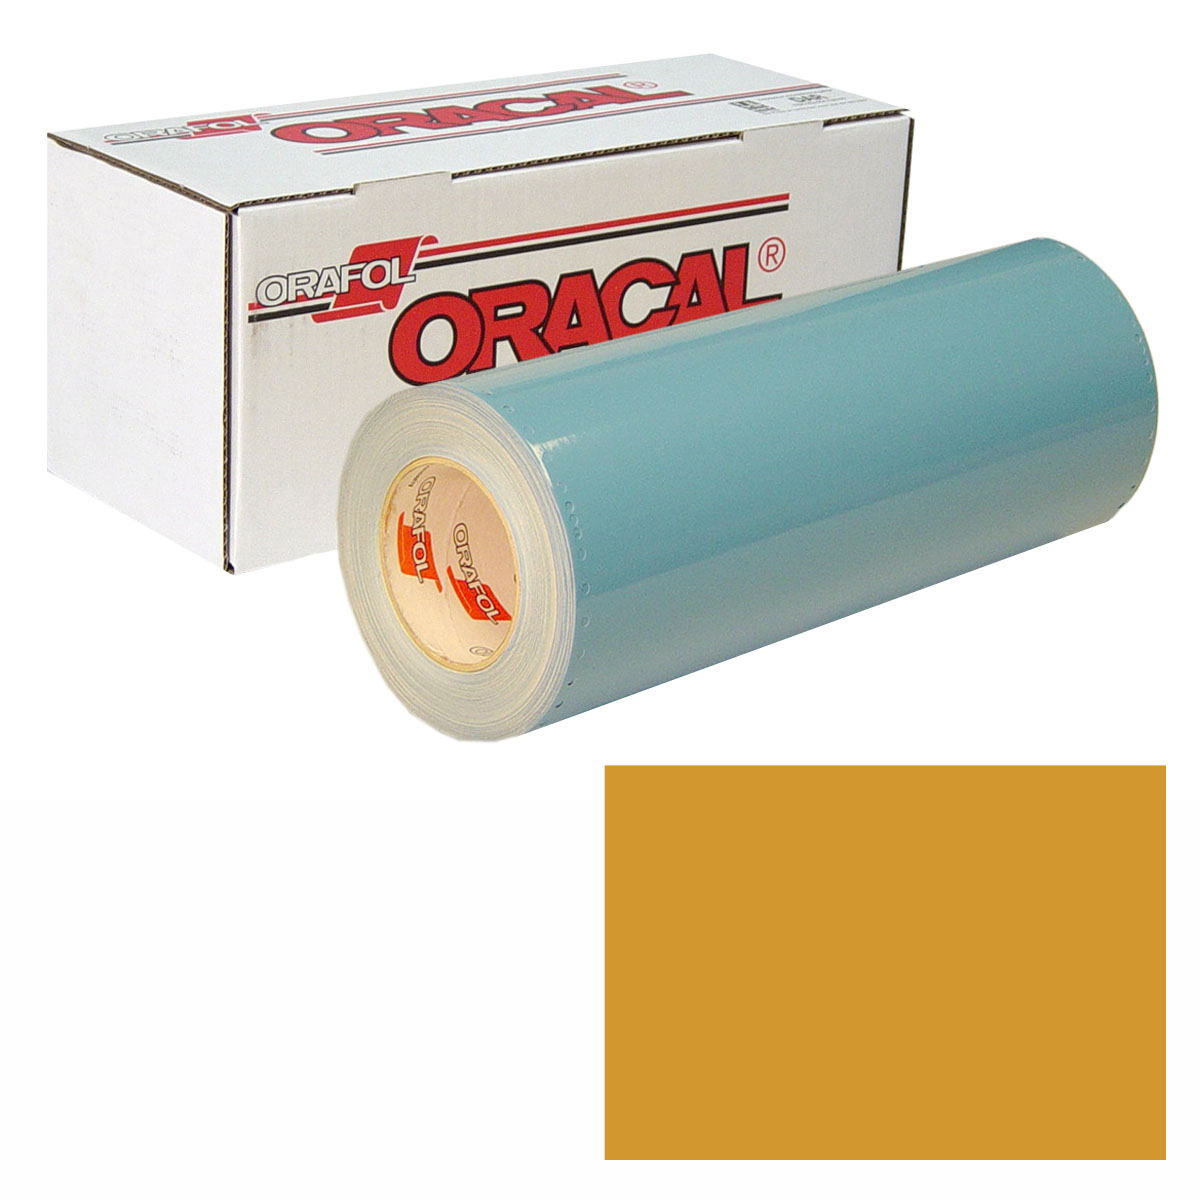 ORACAL 751 Unp 24In X 50Yd 824 Imitation Gold